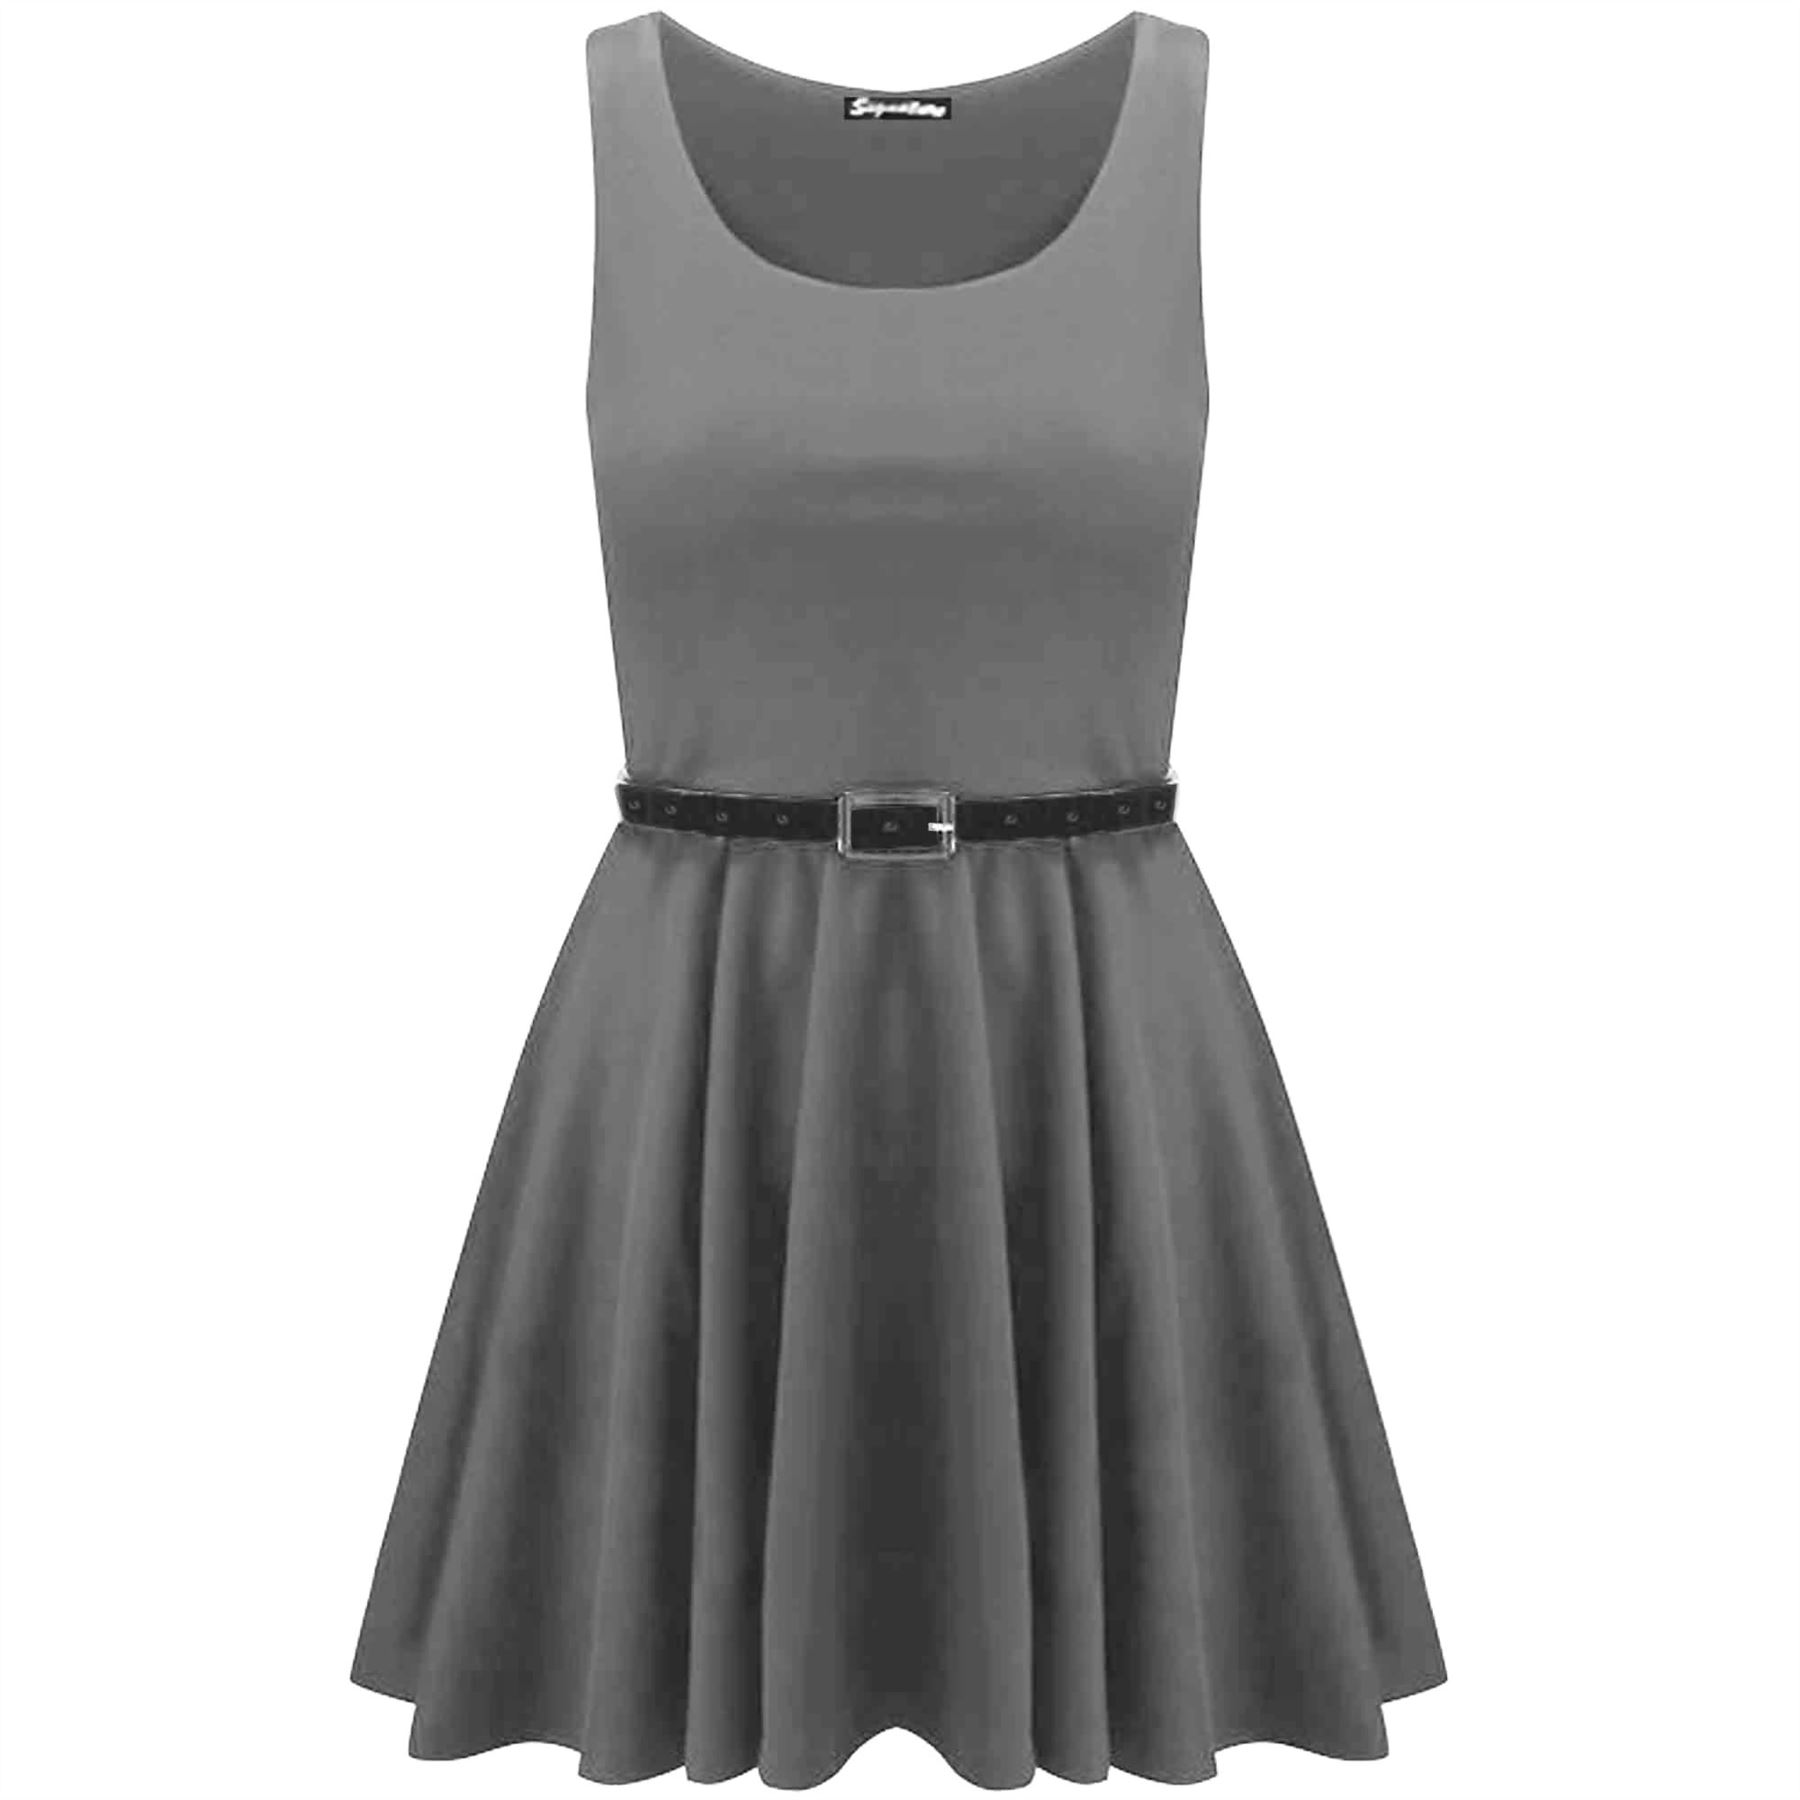 New-Womens-Ladies-Belted-Sleeveless-Franki-Flared-Party-Swing-Skater-Dress-Top thumbnail 27